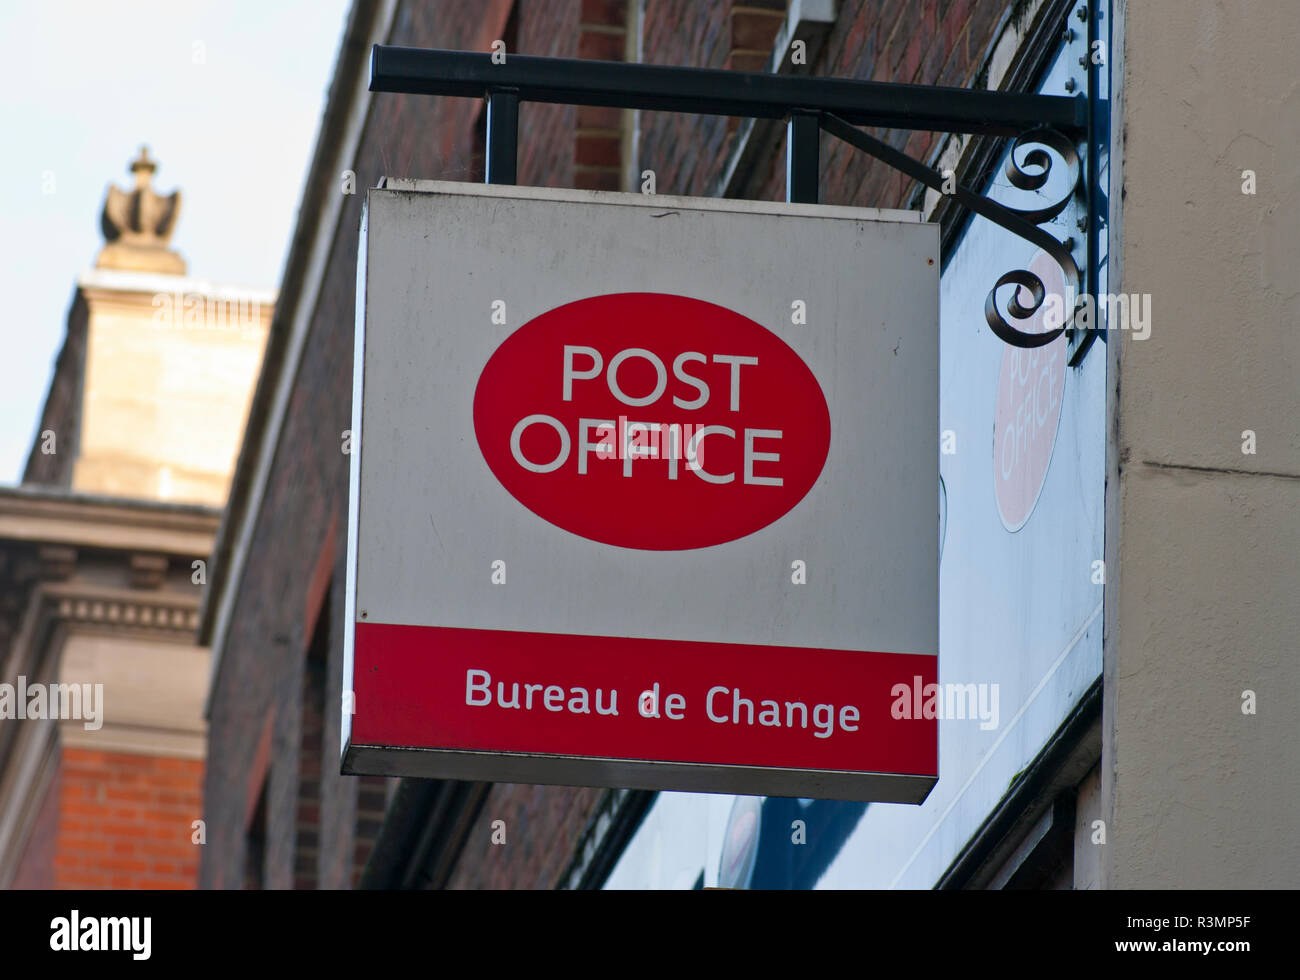 Bureau De Change Stock Photos Amp Bureau De Change Stock Images Alamy